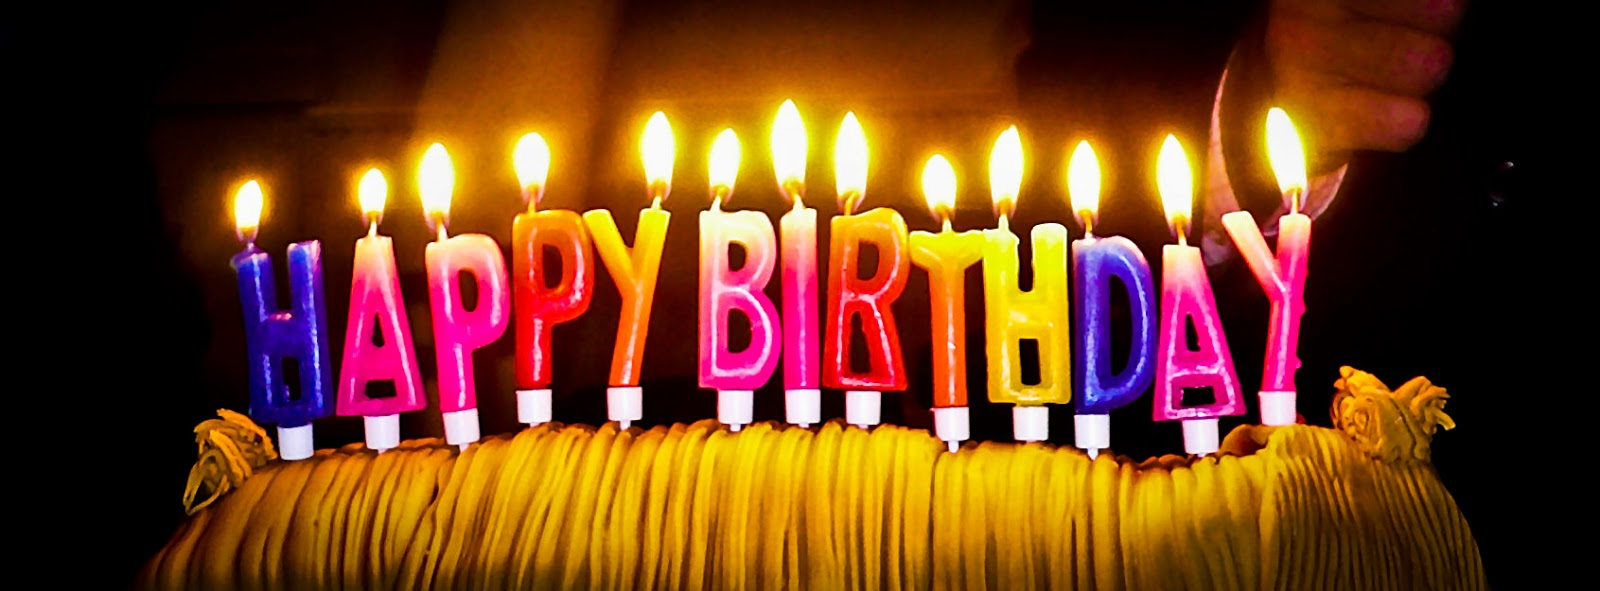 Happy Birthday Male Friend